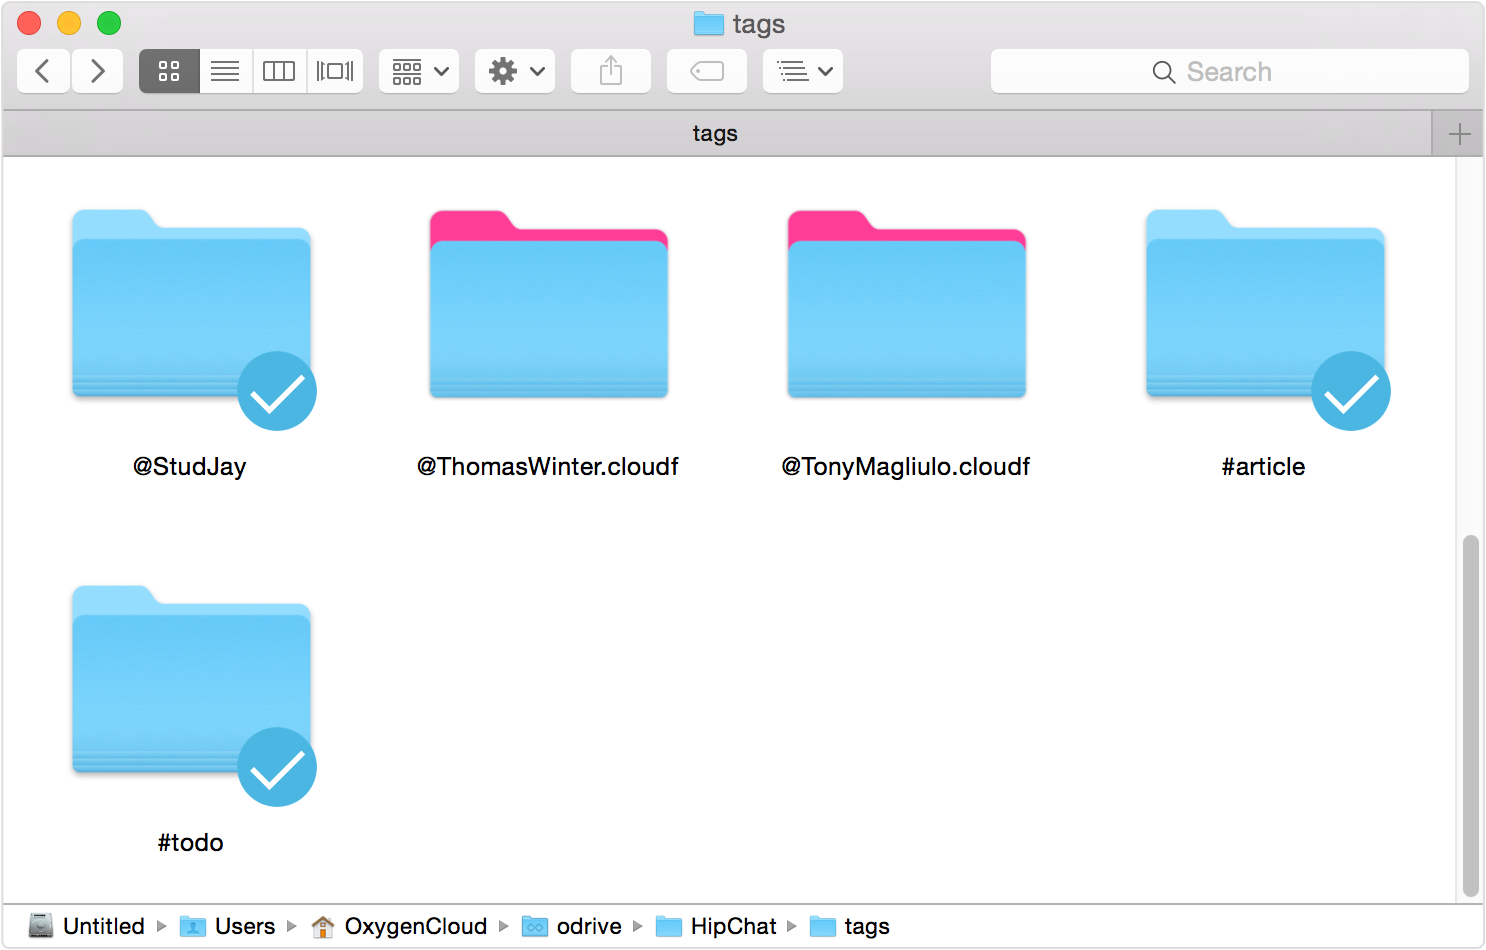 Access files based on #hashtags and @tags